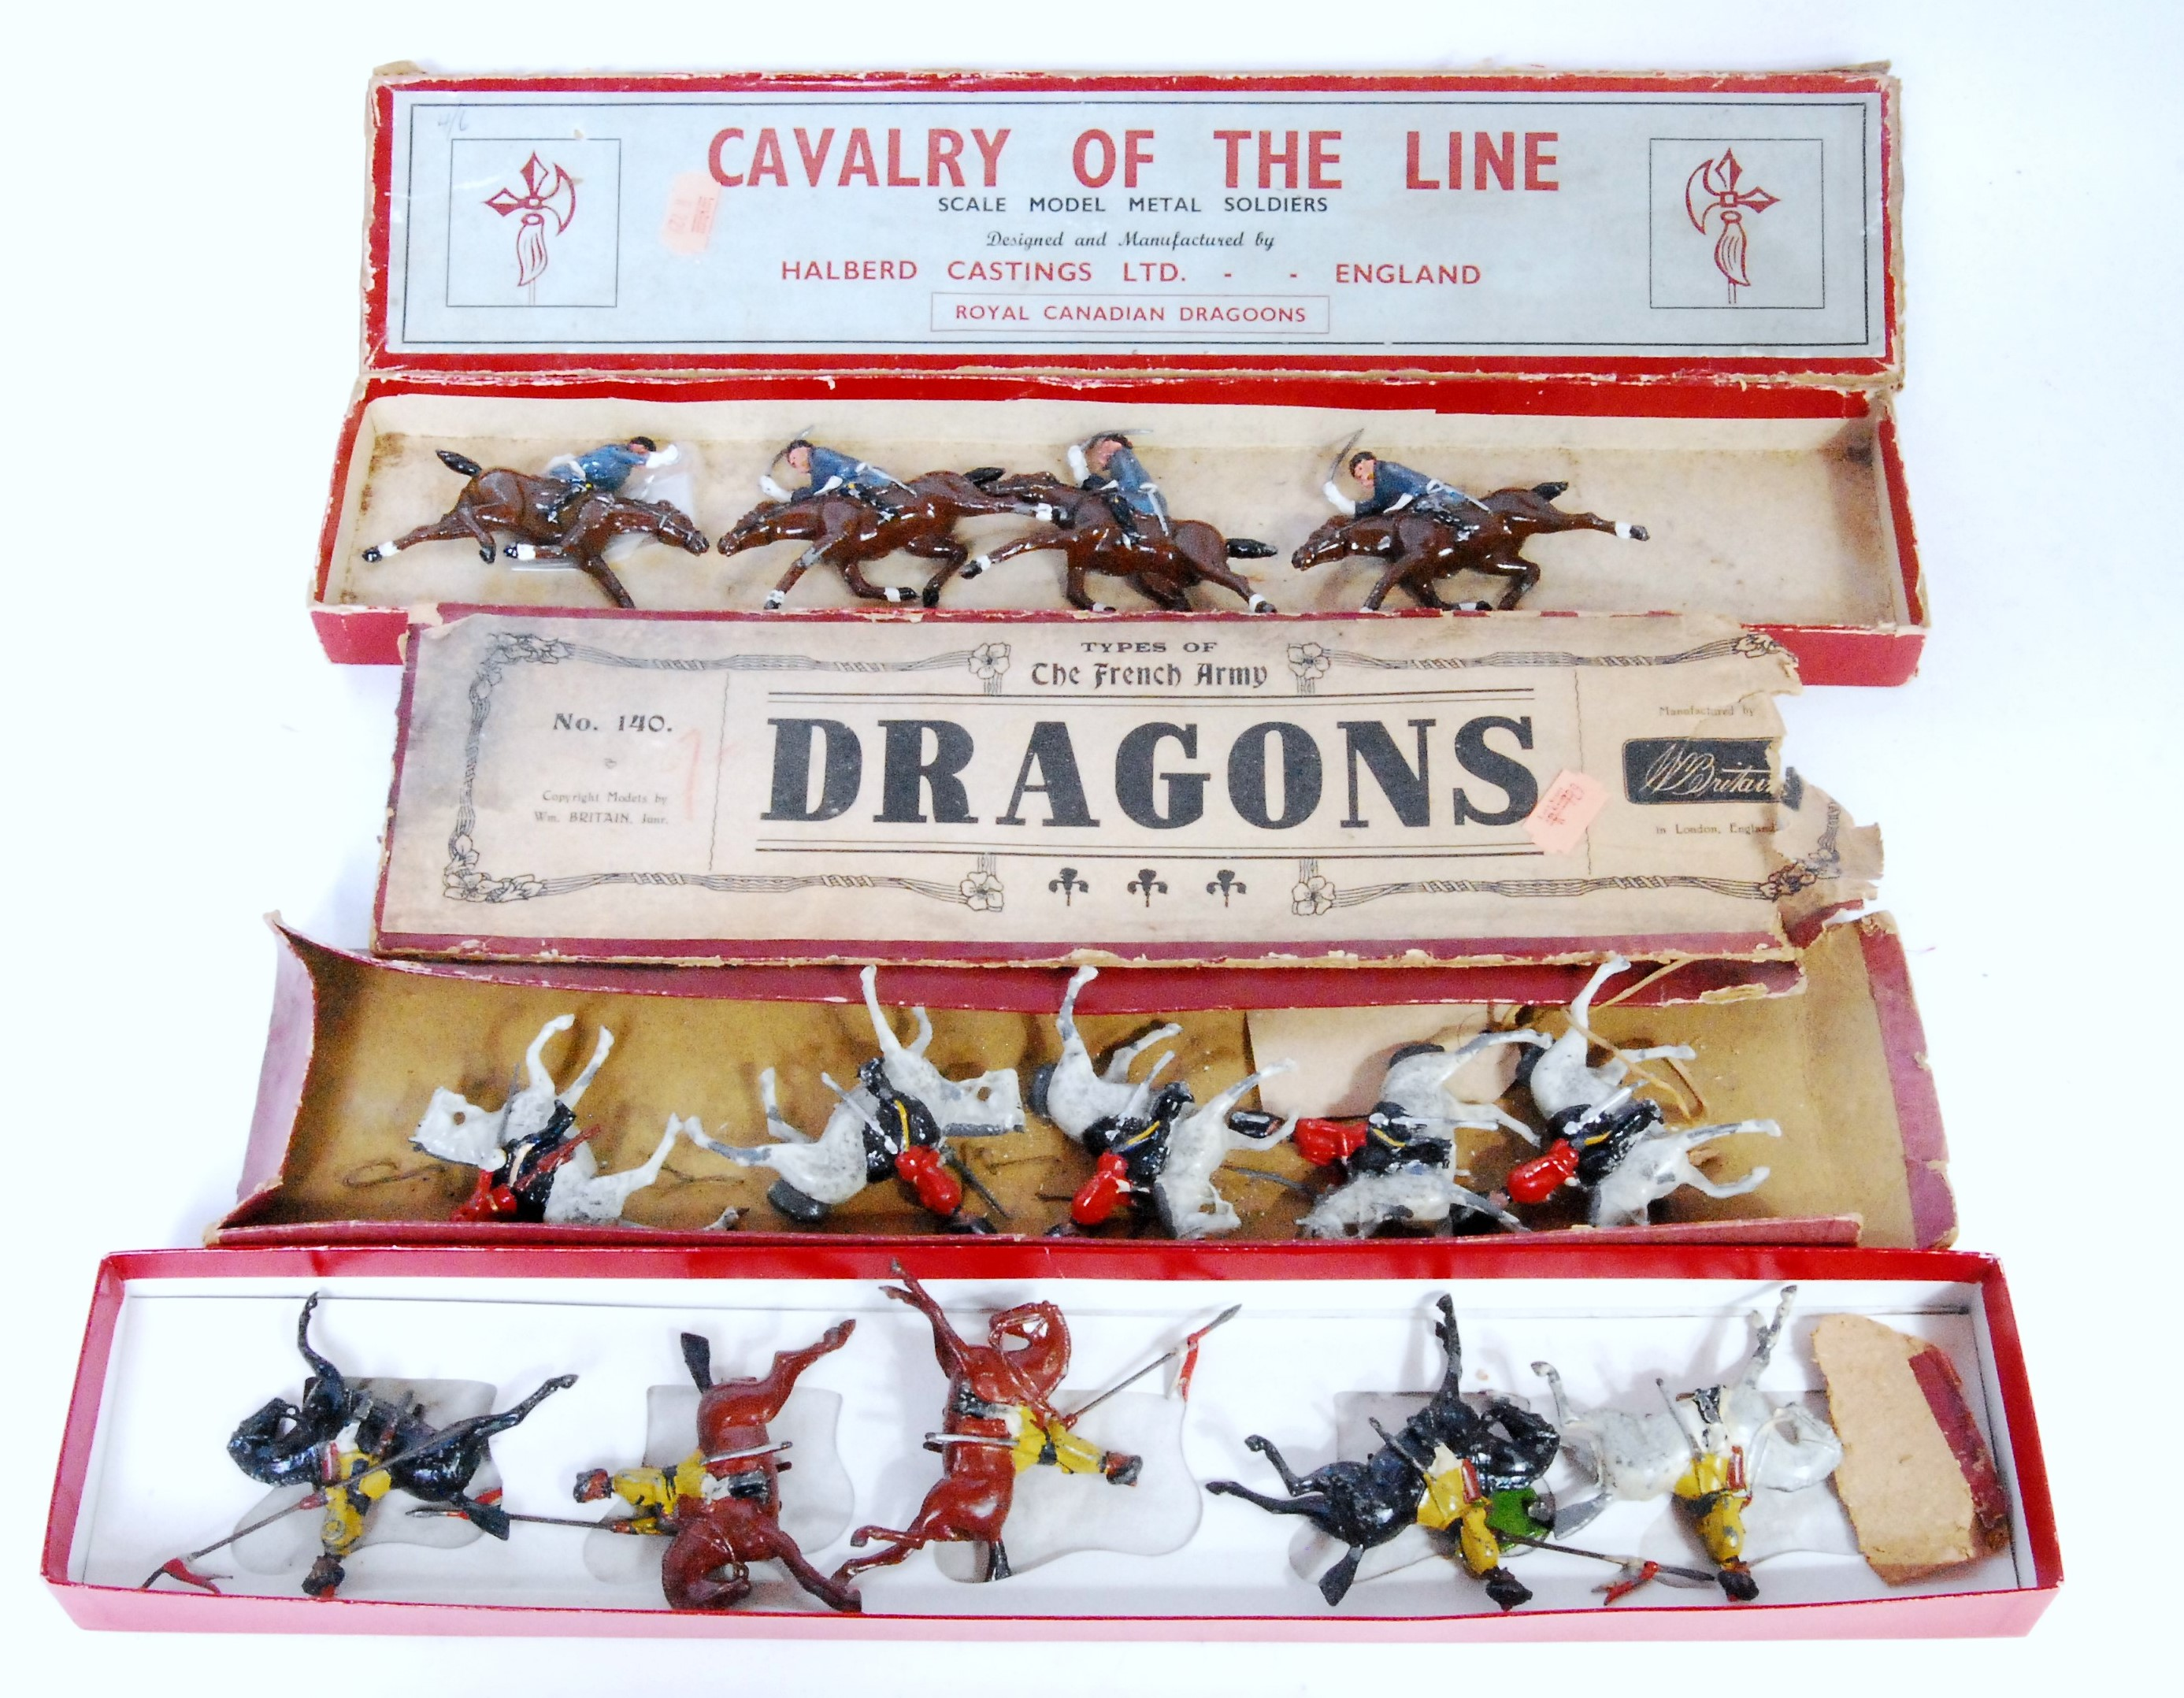 Collection of various Britains and Halberd Castings Mounted Soldiers, to include No.140 Britains